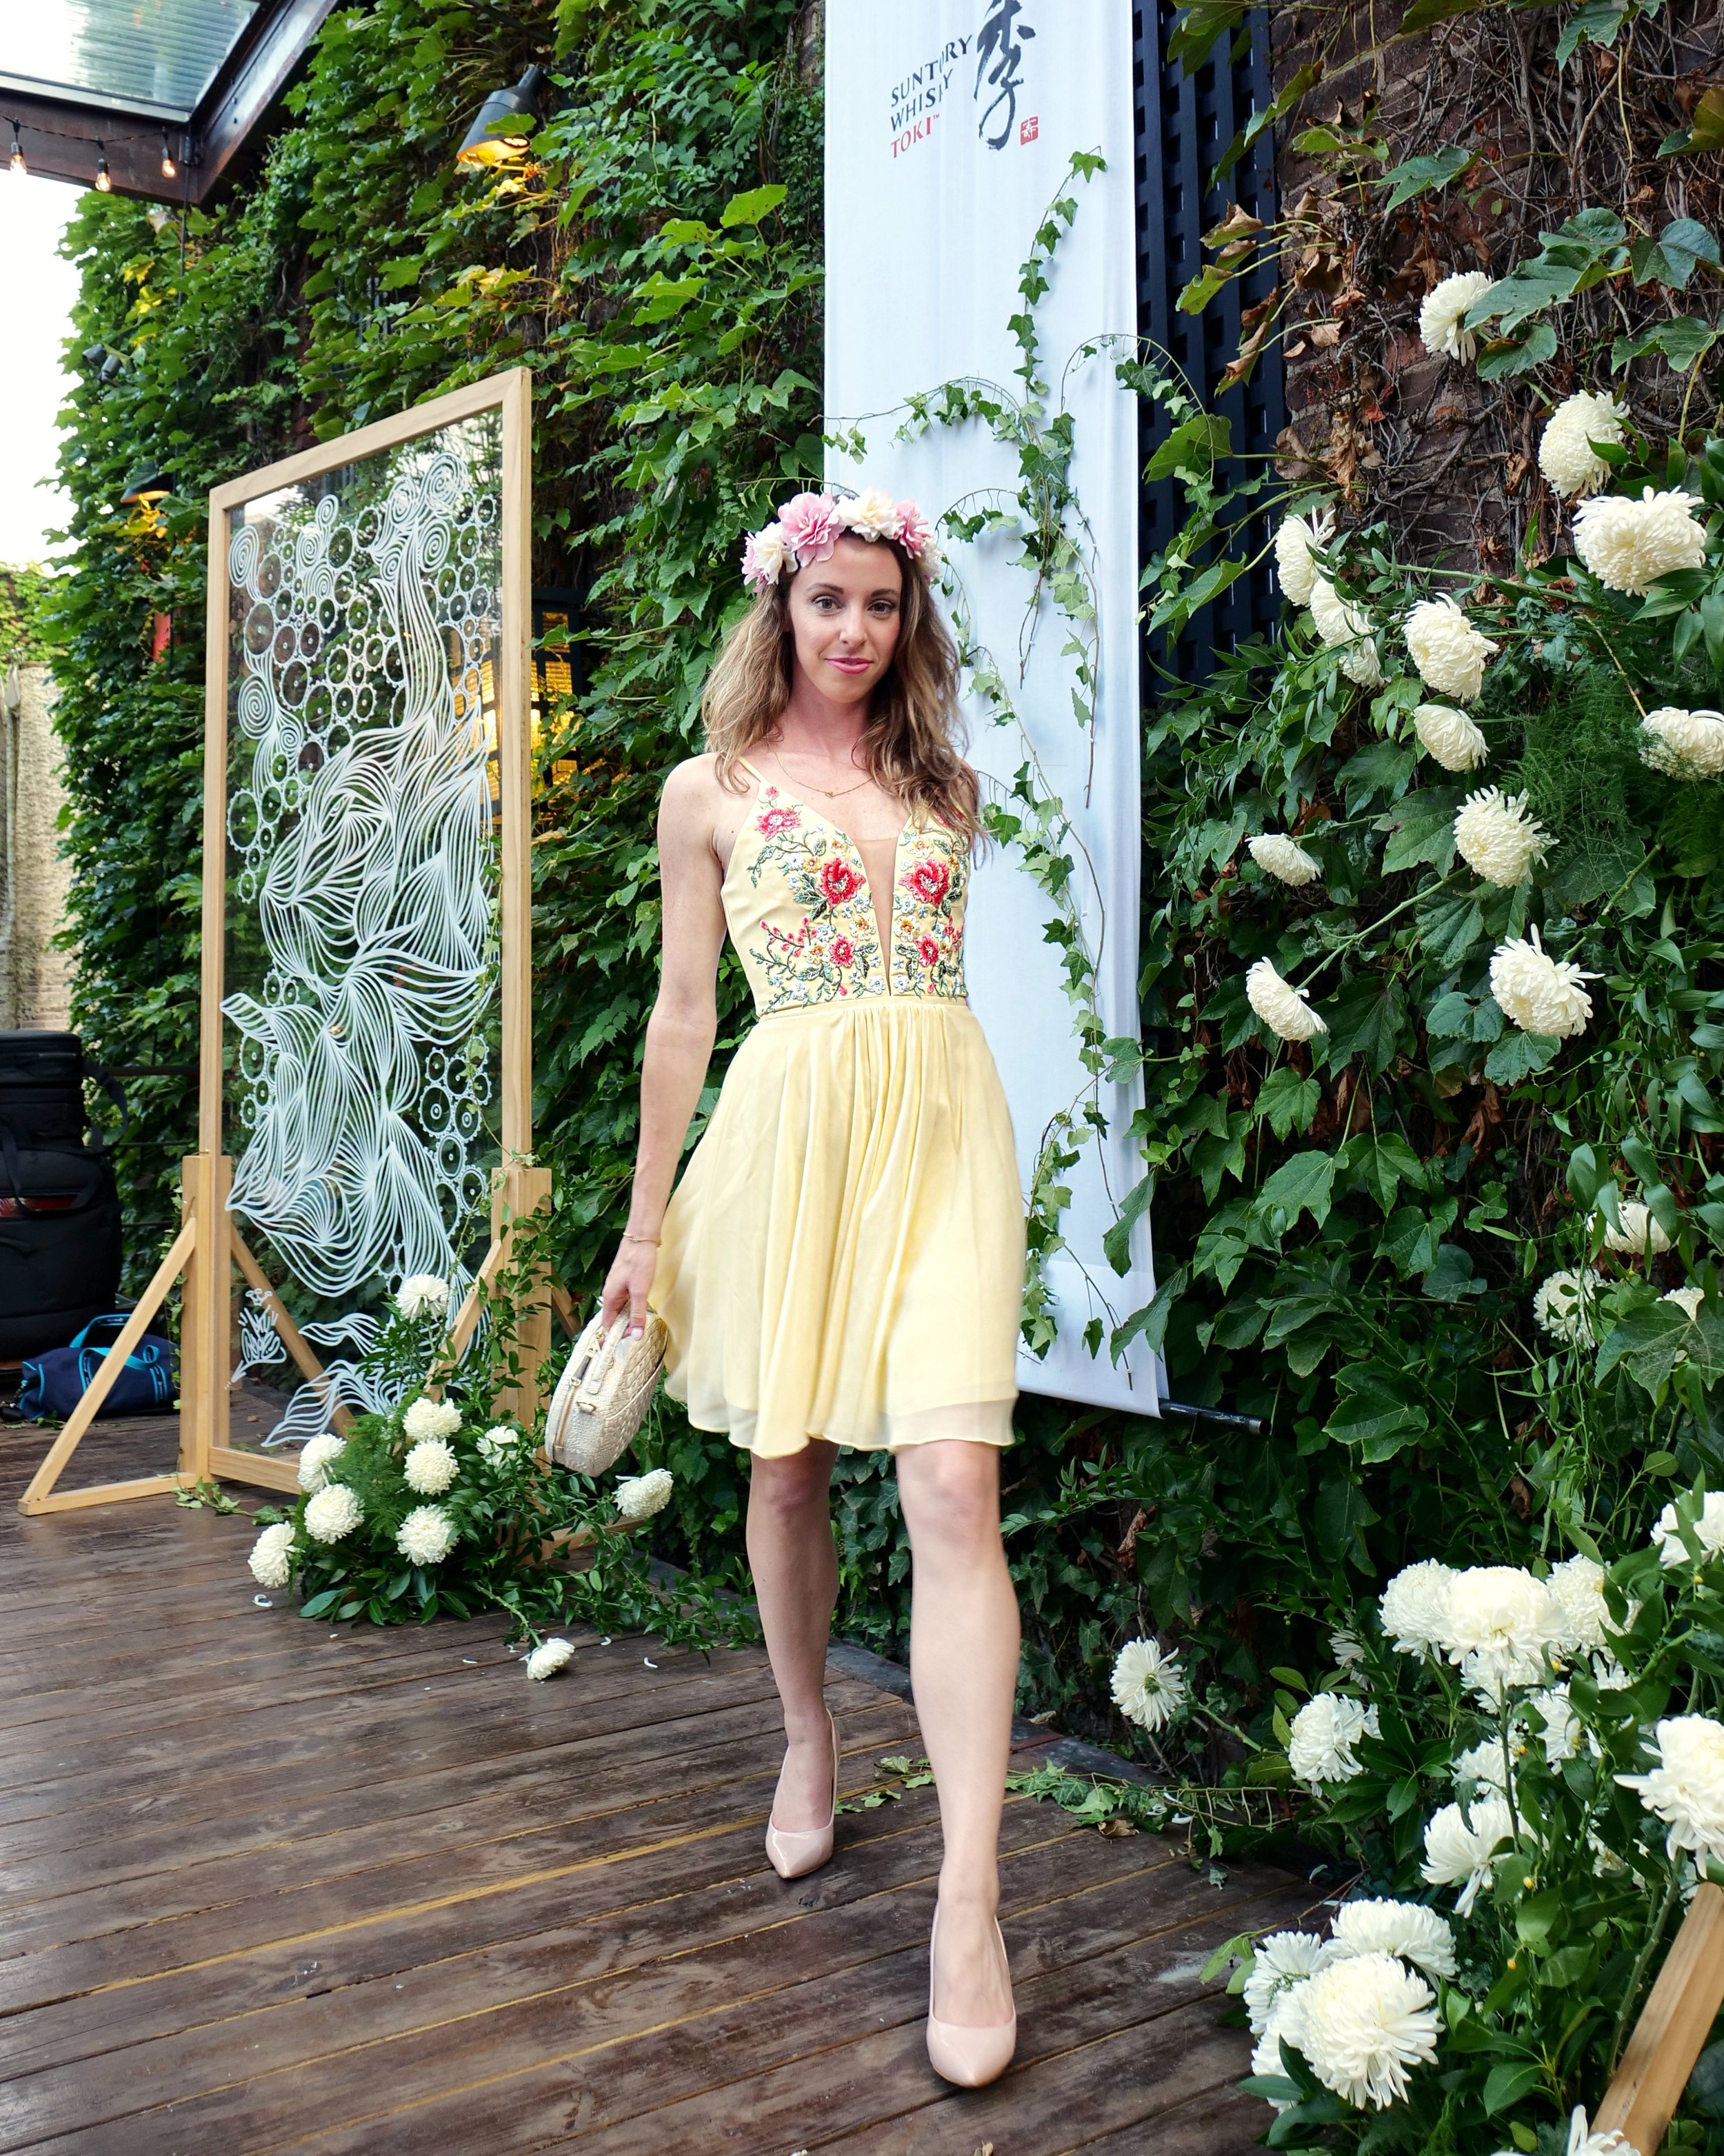 My outfit for  Secret Summer  in 2018 was focused on flowers to bring out the garden vibe of the event!